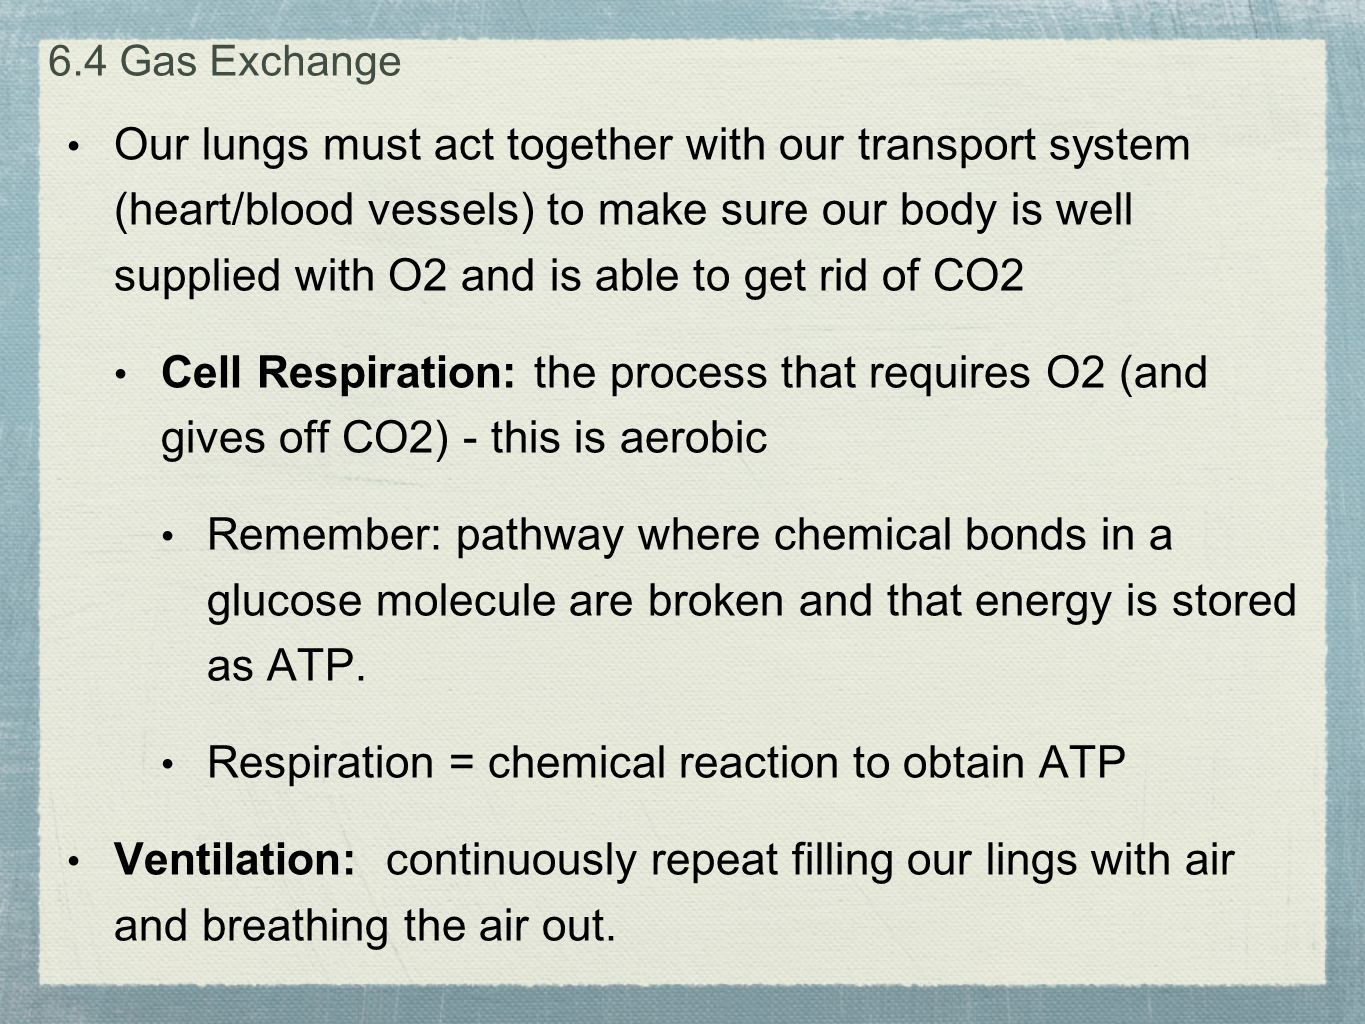 Respiration = chemical reaction to obtain ATP